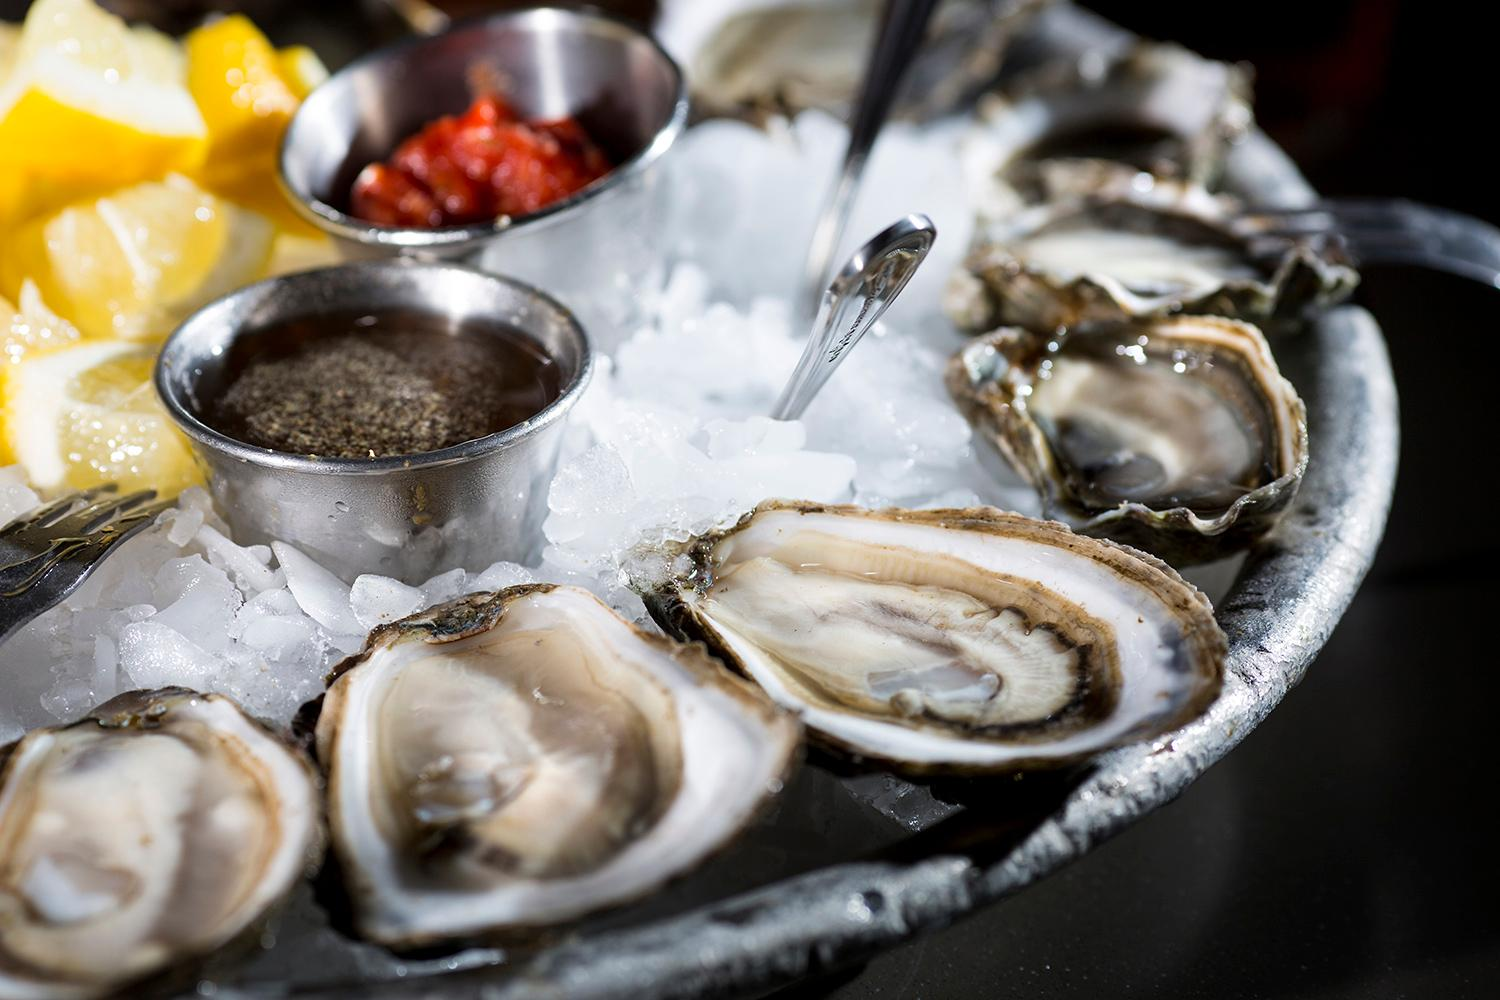 A plate of freshly shucked oysters at Taylor Shellfish's retail shop, located at 2182 Chuckanut Dr, in Bow, Washington. (Sy Bean / Seattle Refined)